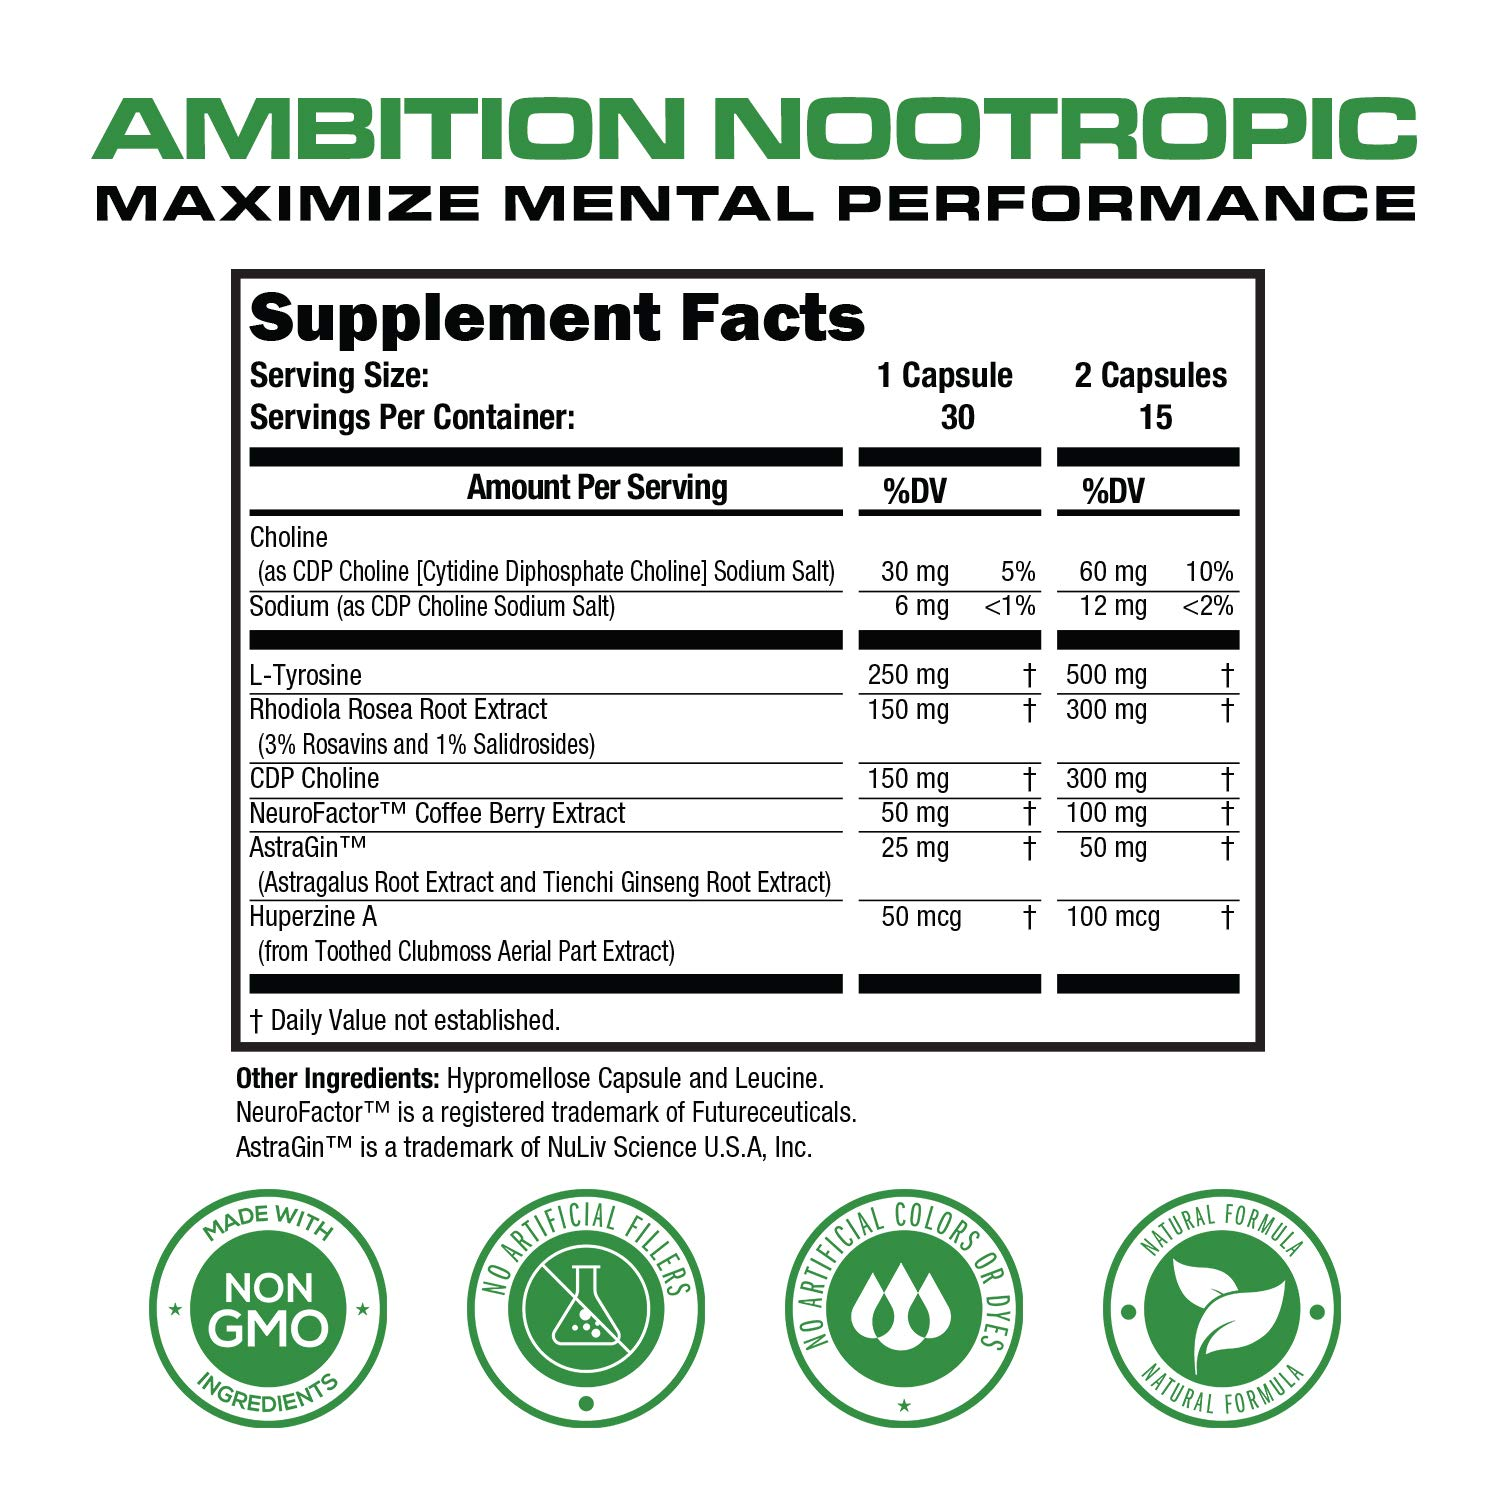 Ambition Nootropic Brain Booster Supplement - Enhance Focus, Boost Memory & Clarity - Achieve Peak Mental Performance w/CDP Choline, Neurofactor, More - 30 Natural Veggie Pills by Primal One (Image #6)